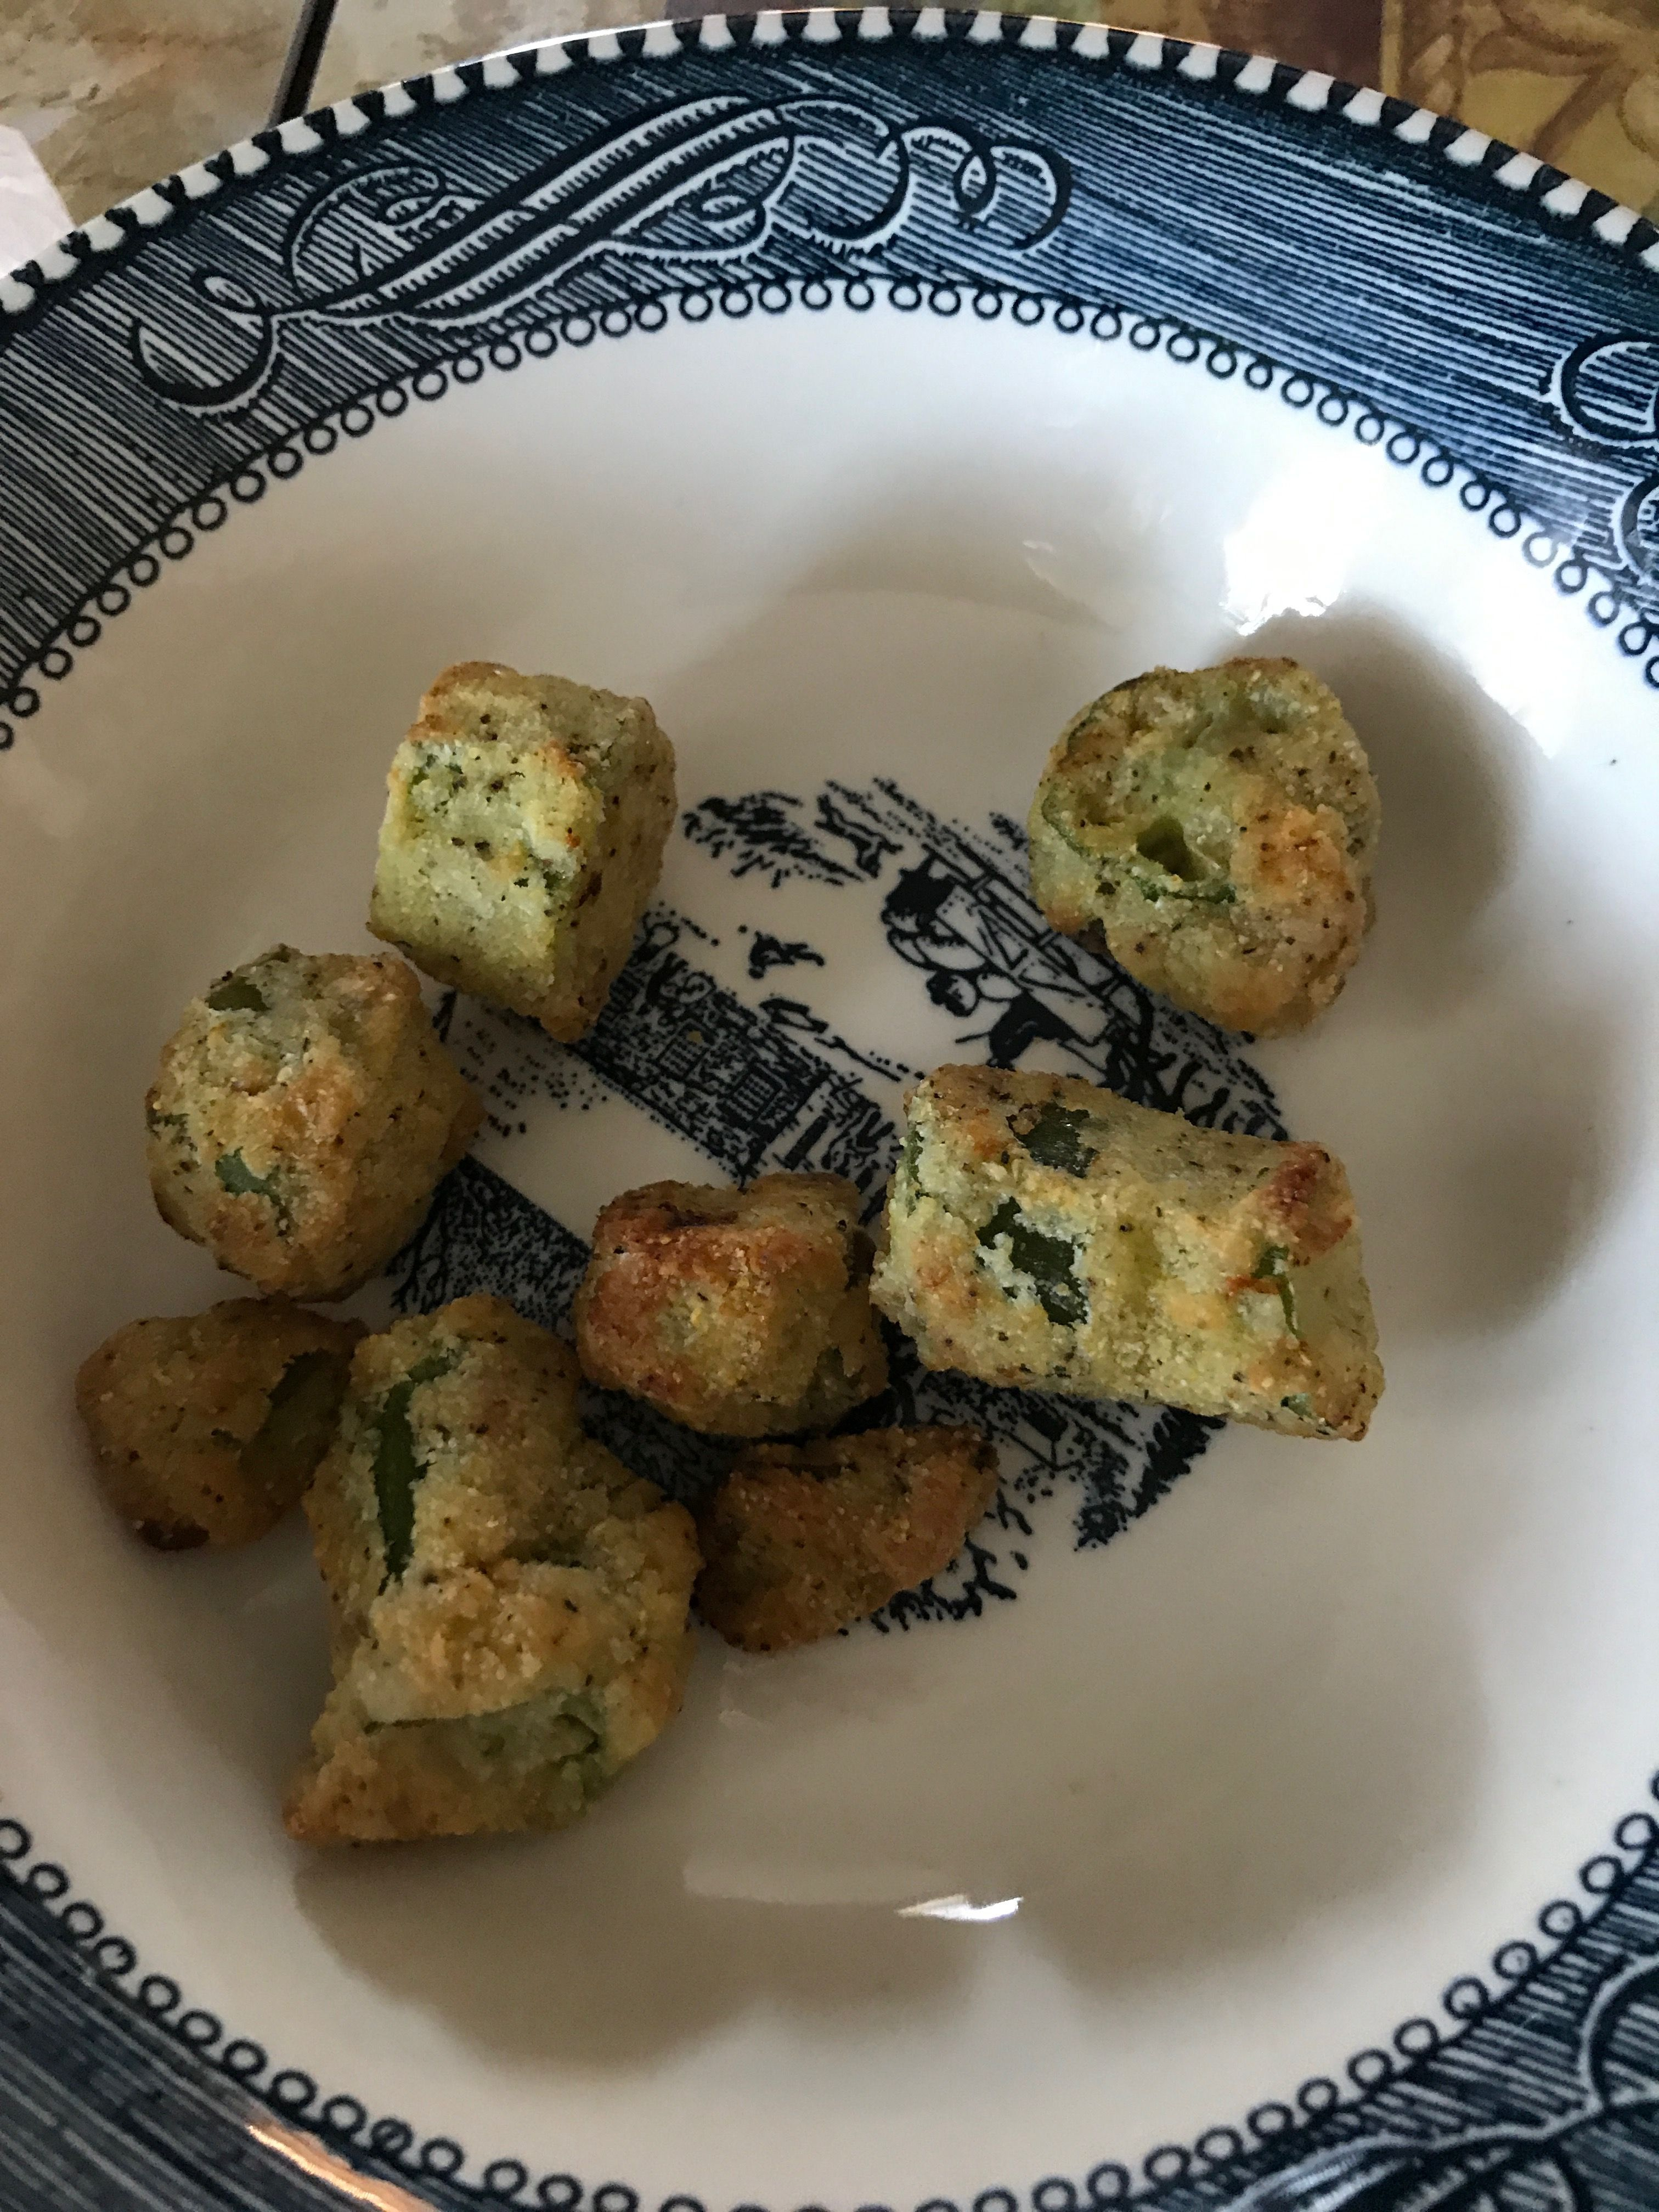 Fried okra in the Air Fryer. Sprayed them with olive oil